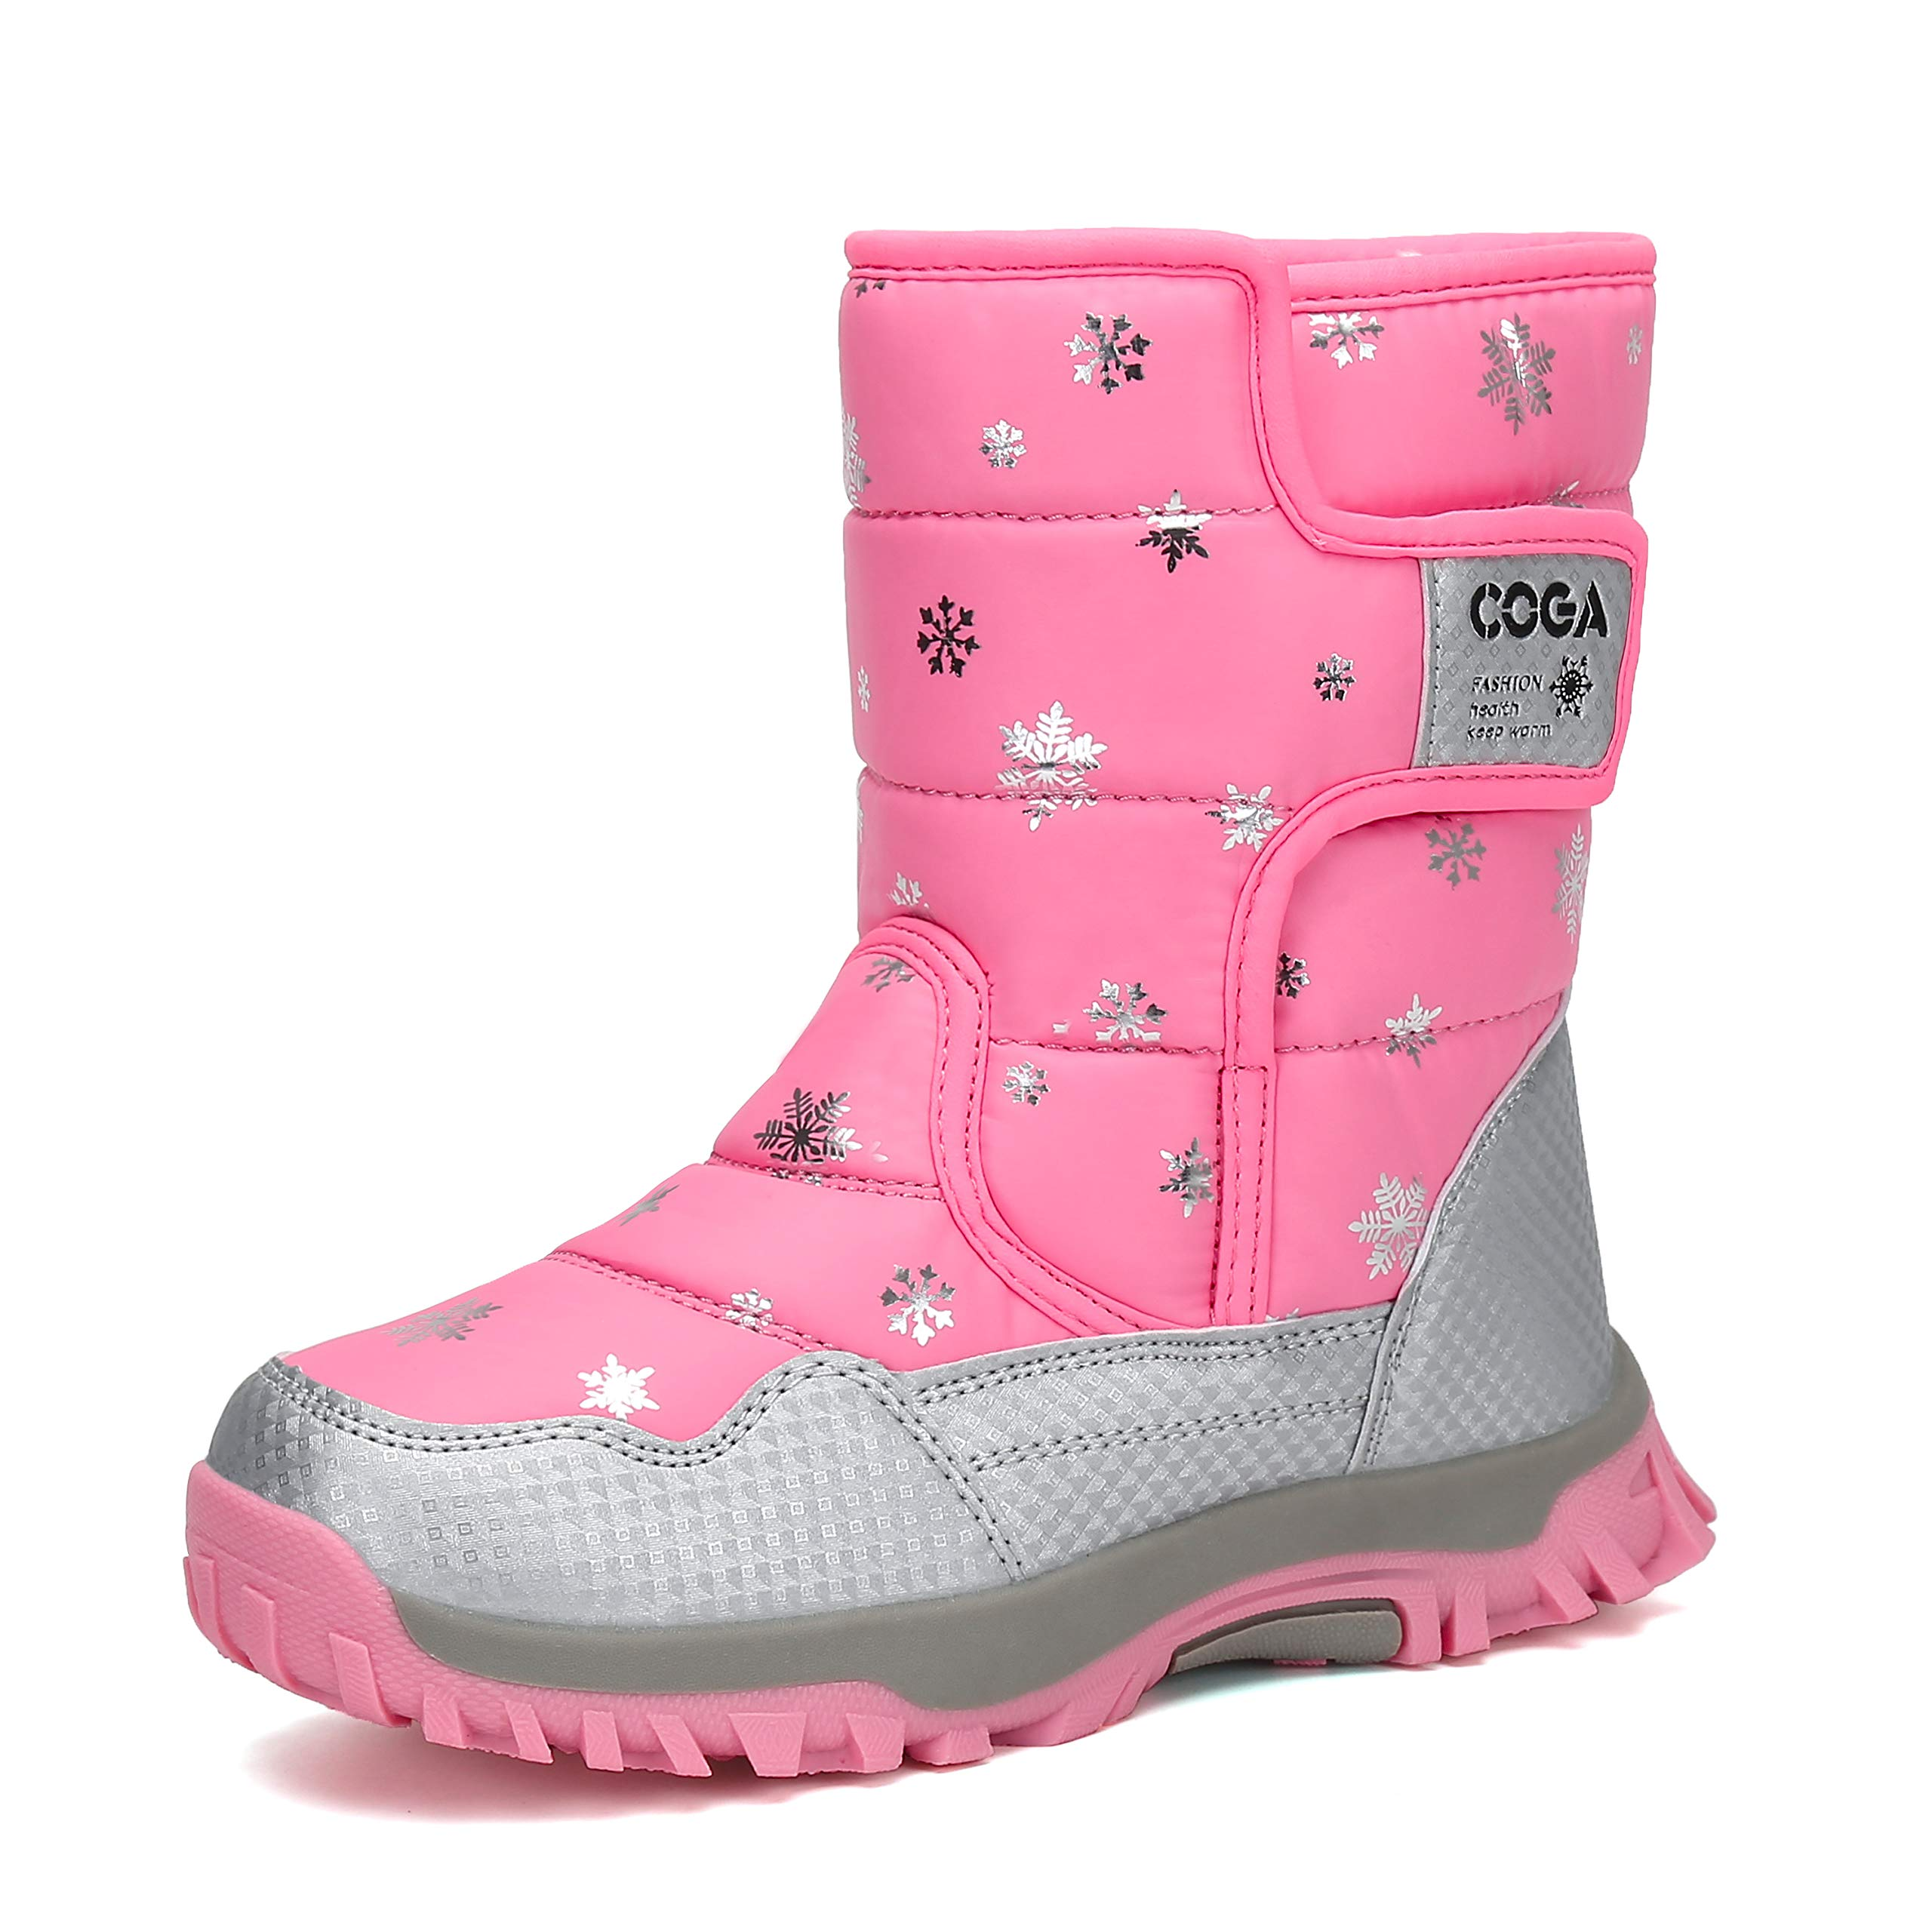 Mishansha Girls Boys Toddler Little Big Kids Winter Fur Snow Boots Warm Water Resistant Antislip Outdoor Shoes Pink by Mishansha (Image #1)